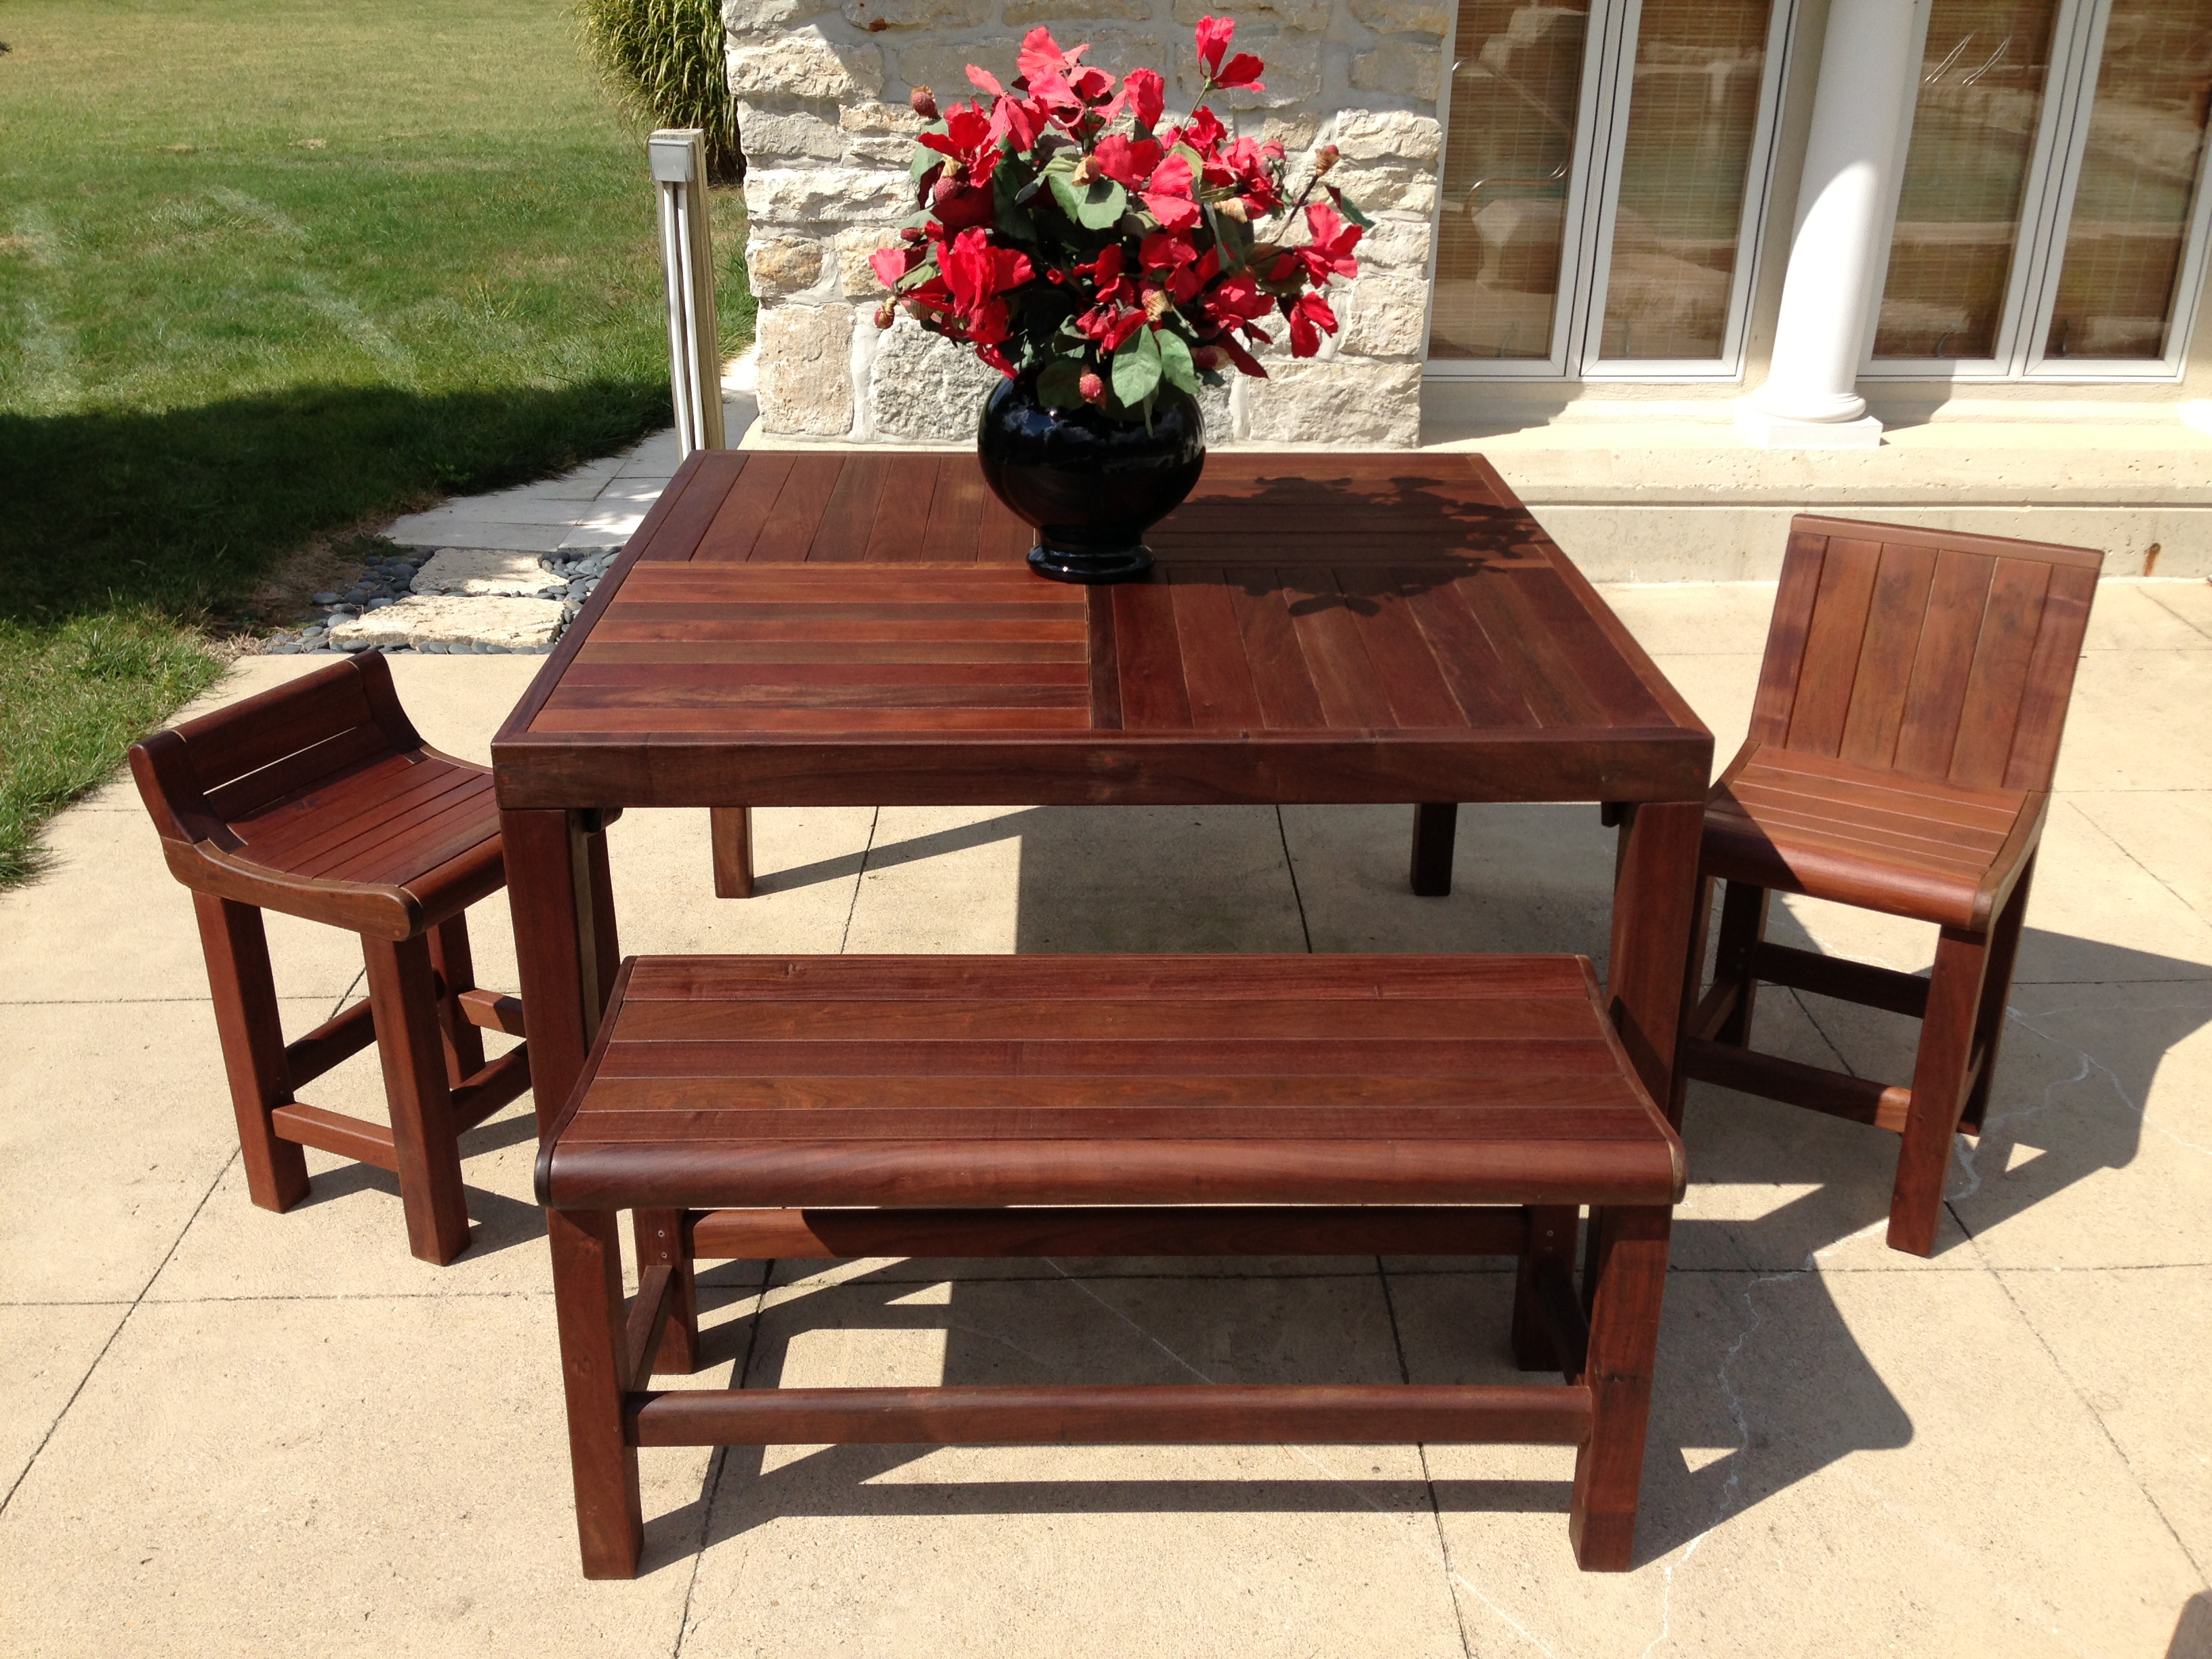 The Palladino Series: counter height tables and chairs.